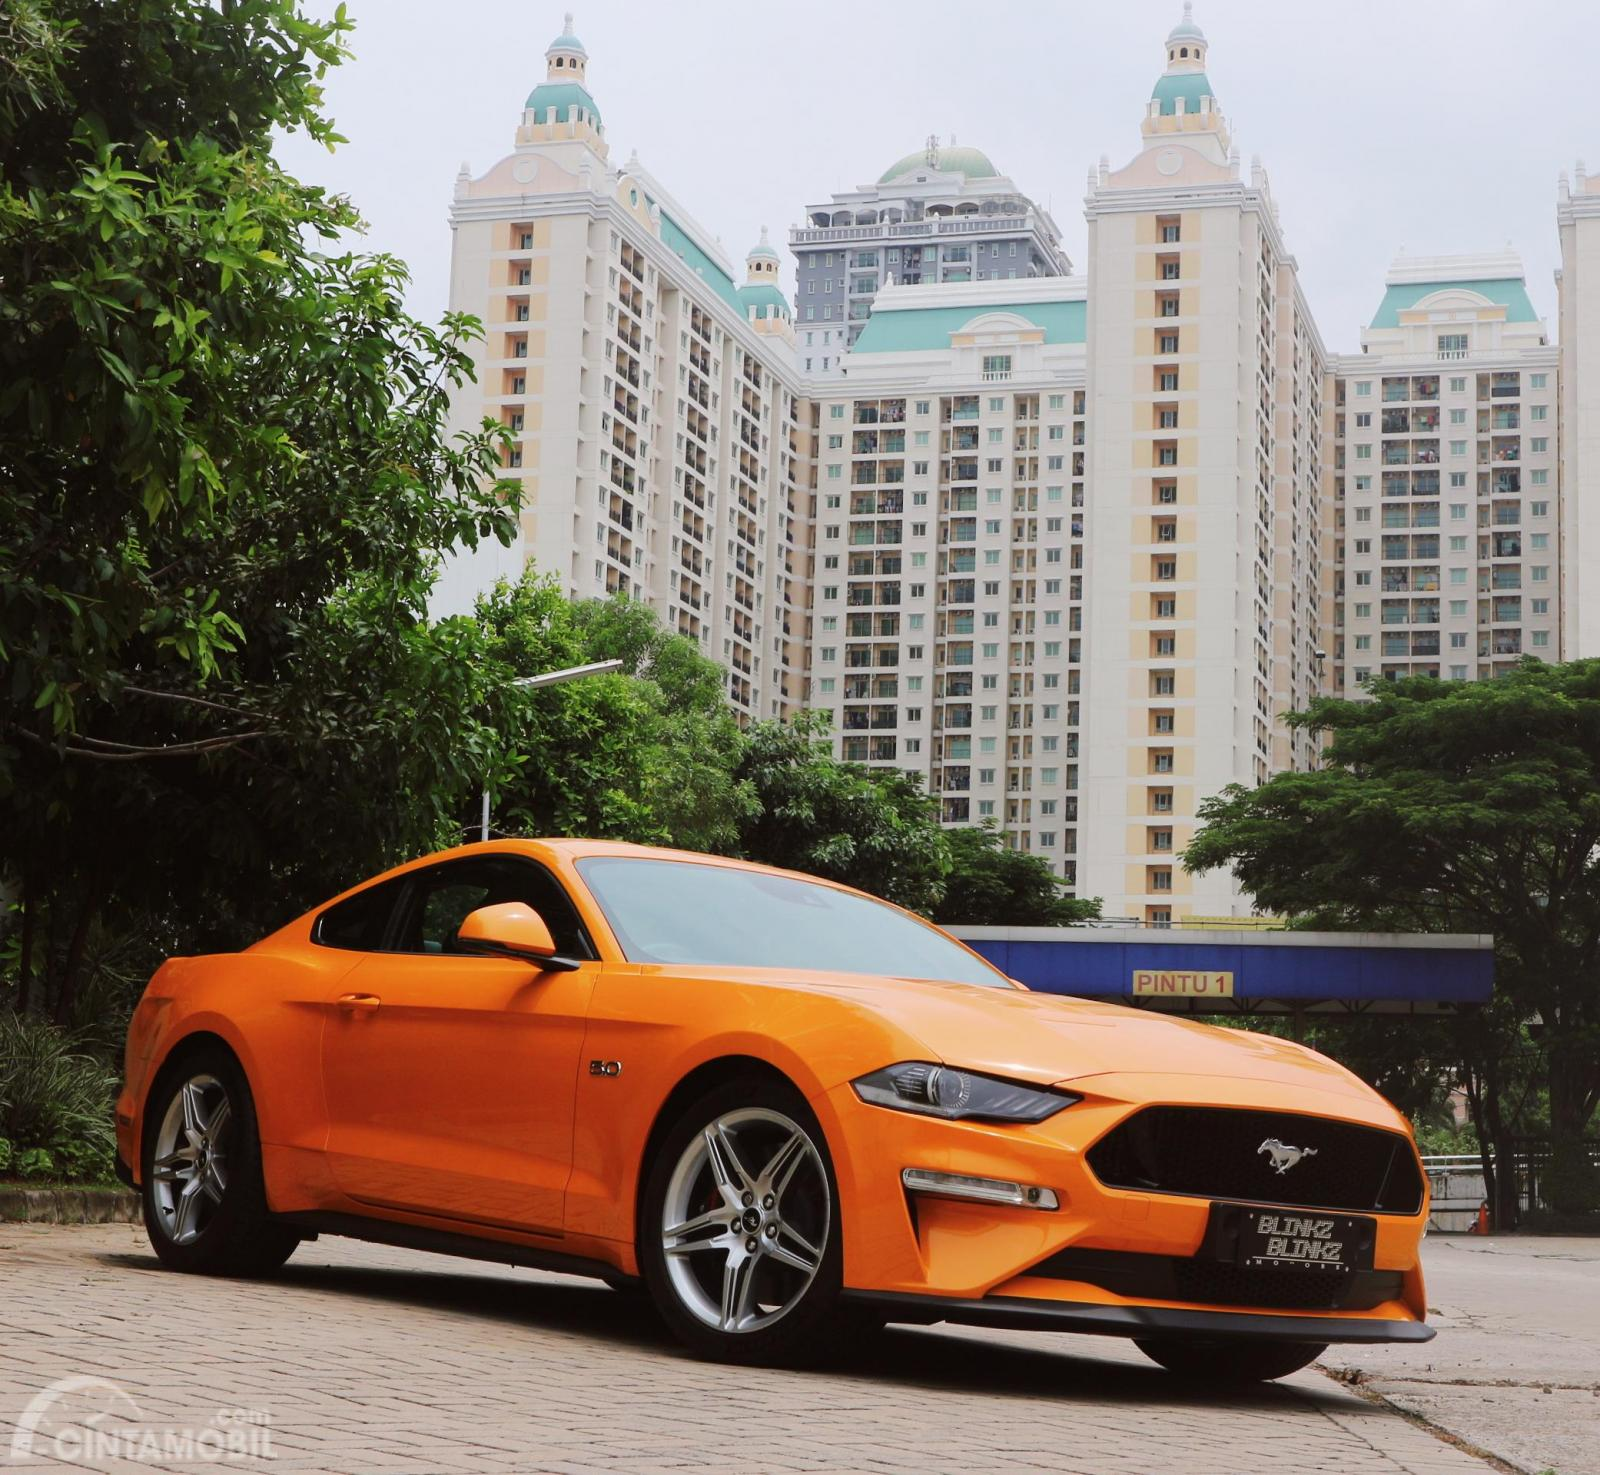 The Latest Ford Mustang Prices In Indonesia